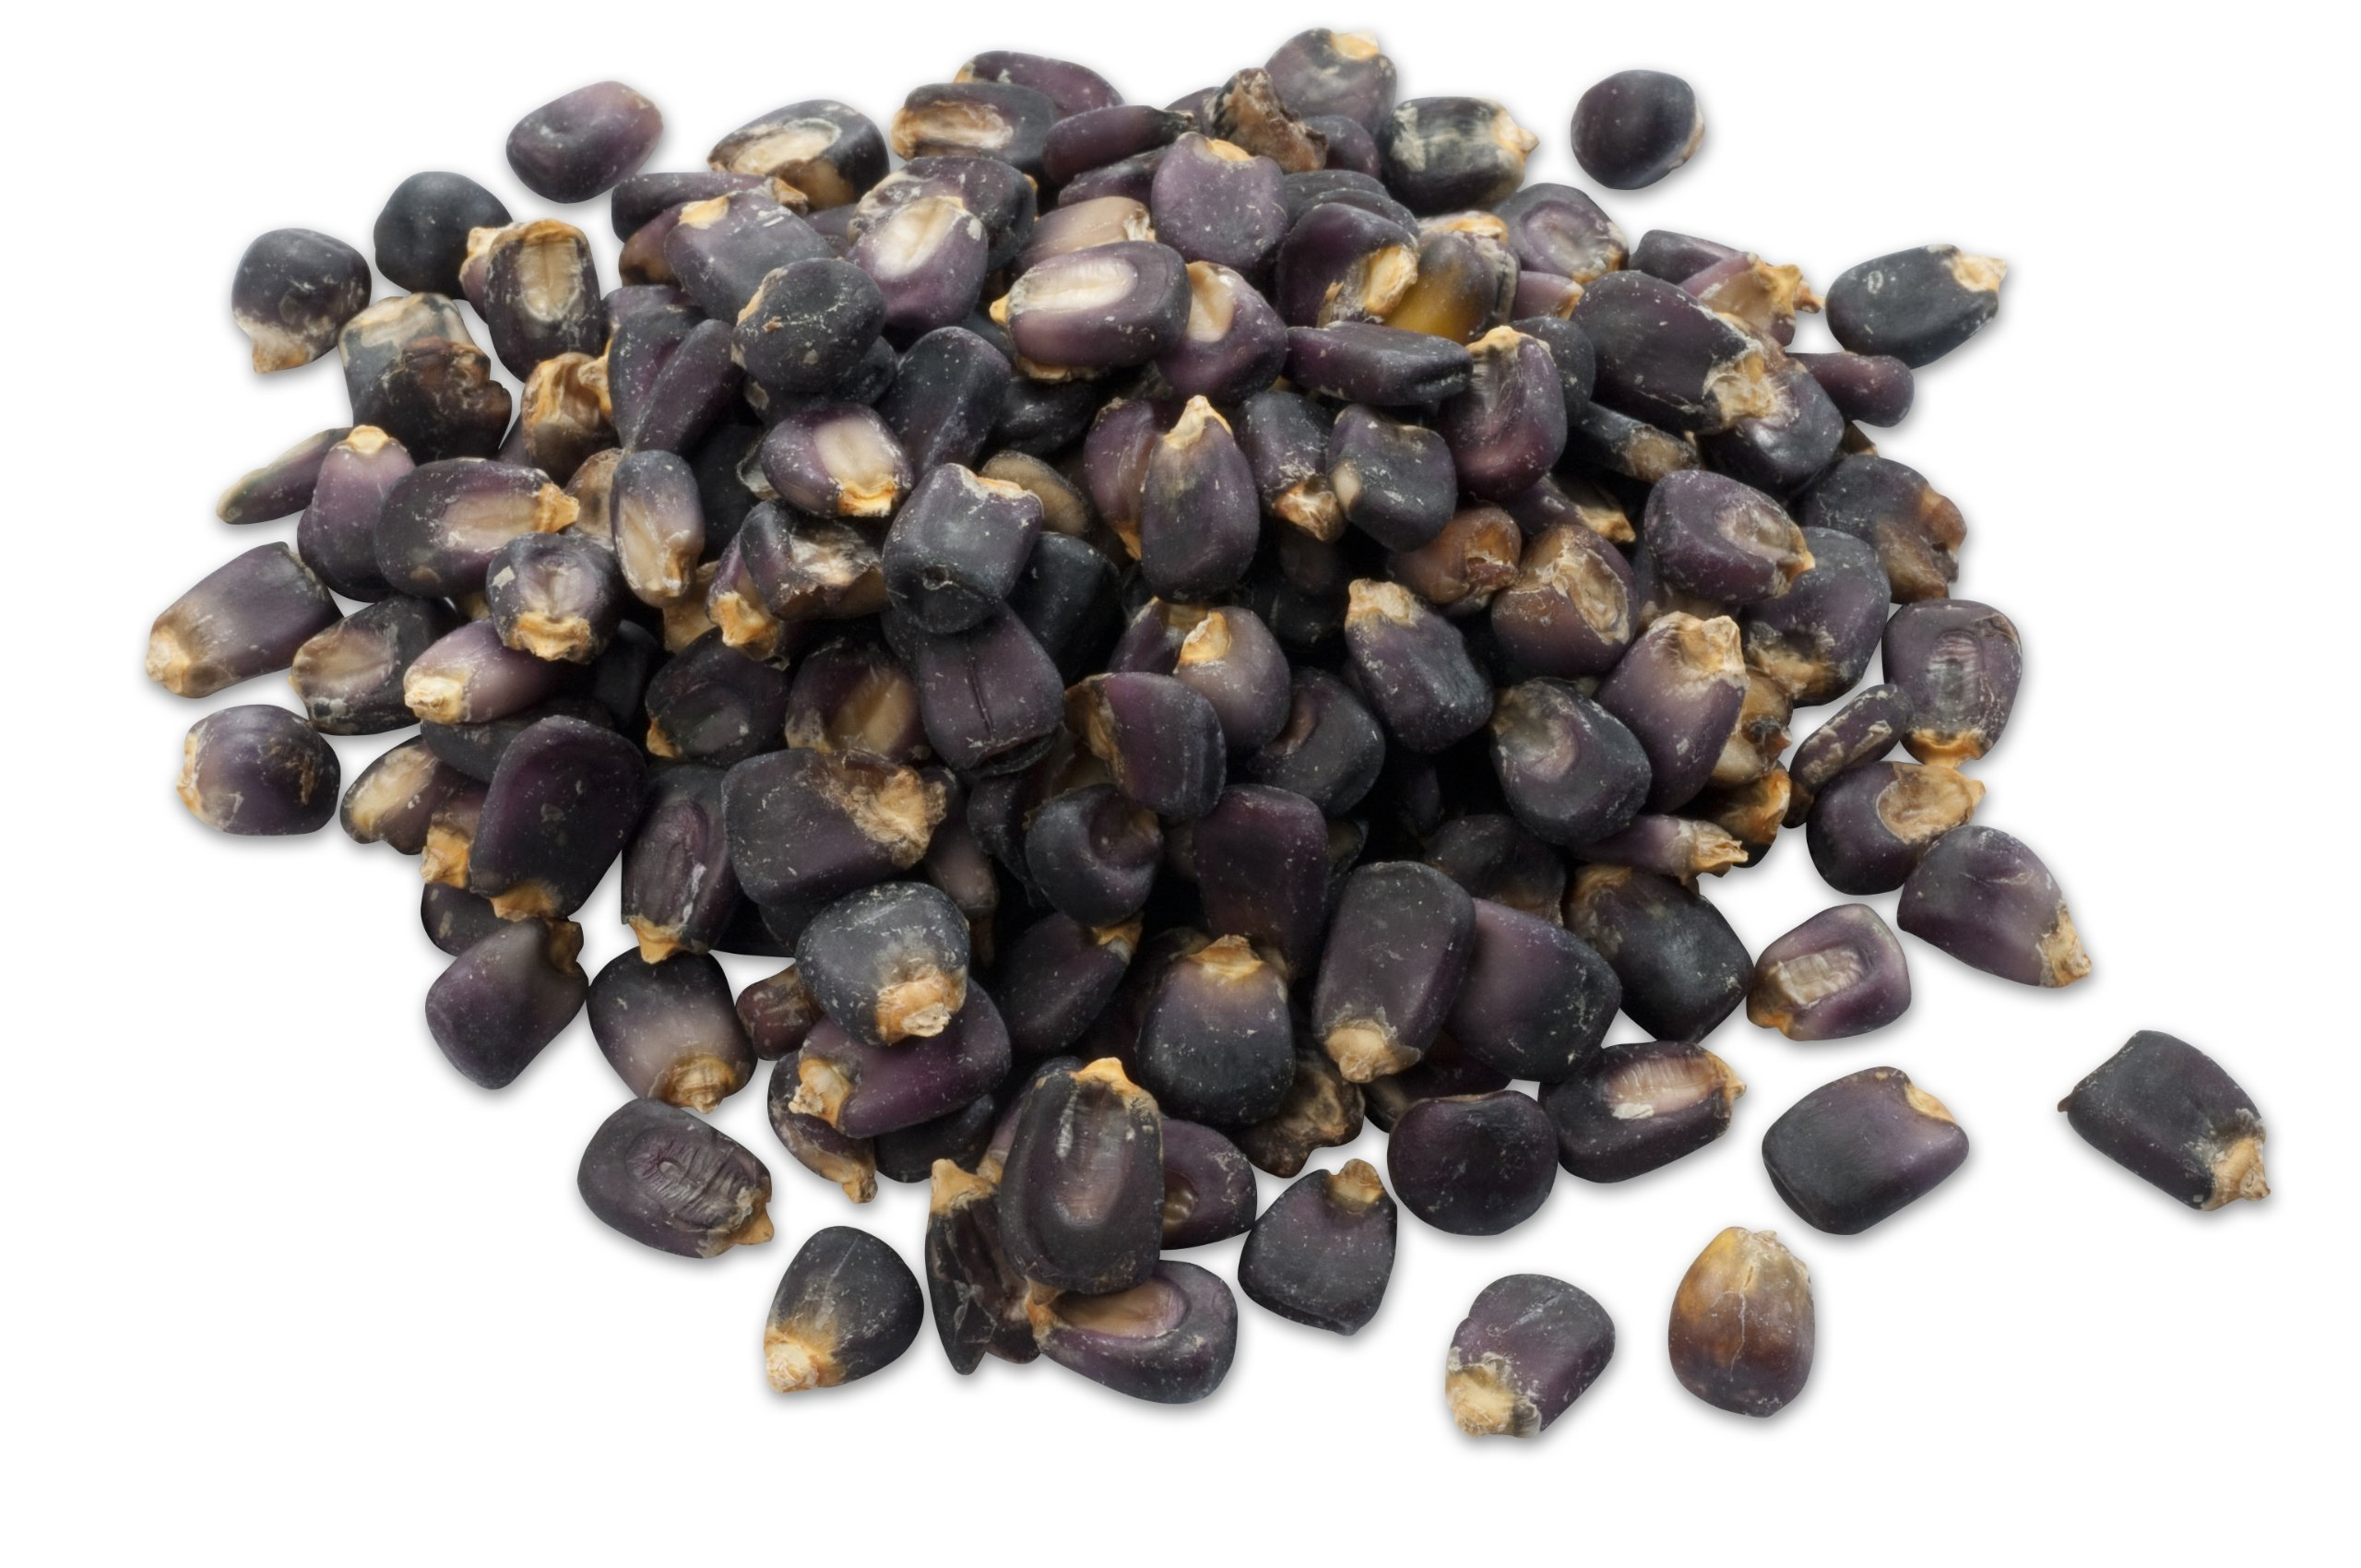 Los Chileros Blue Corn Posole, 5 Pound